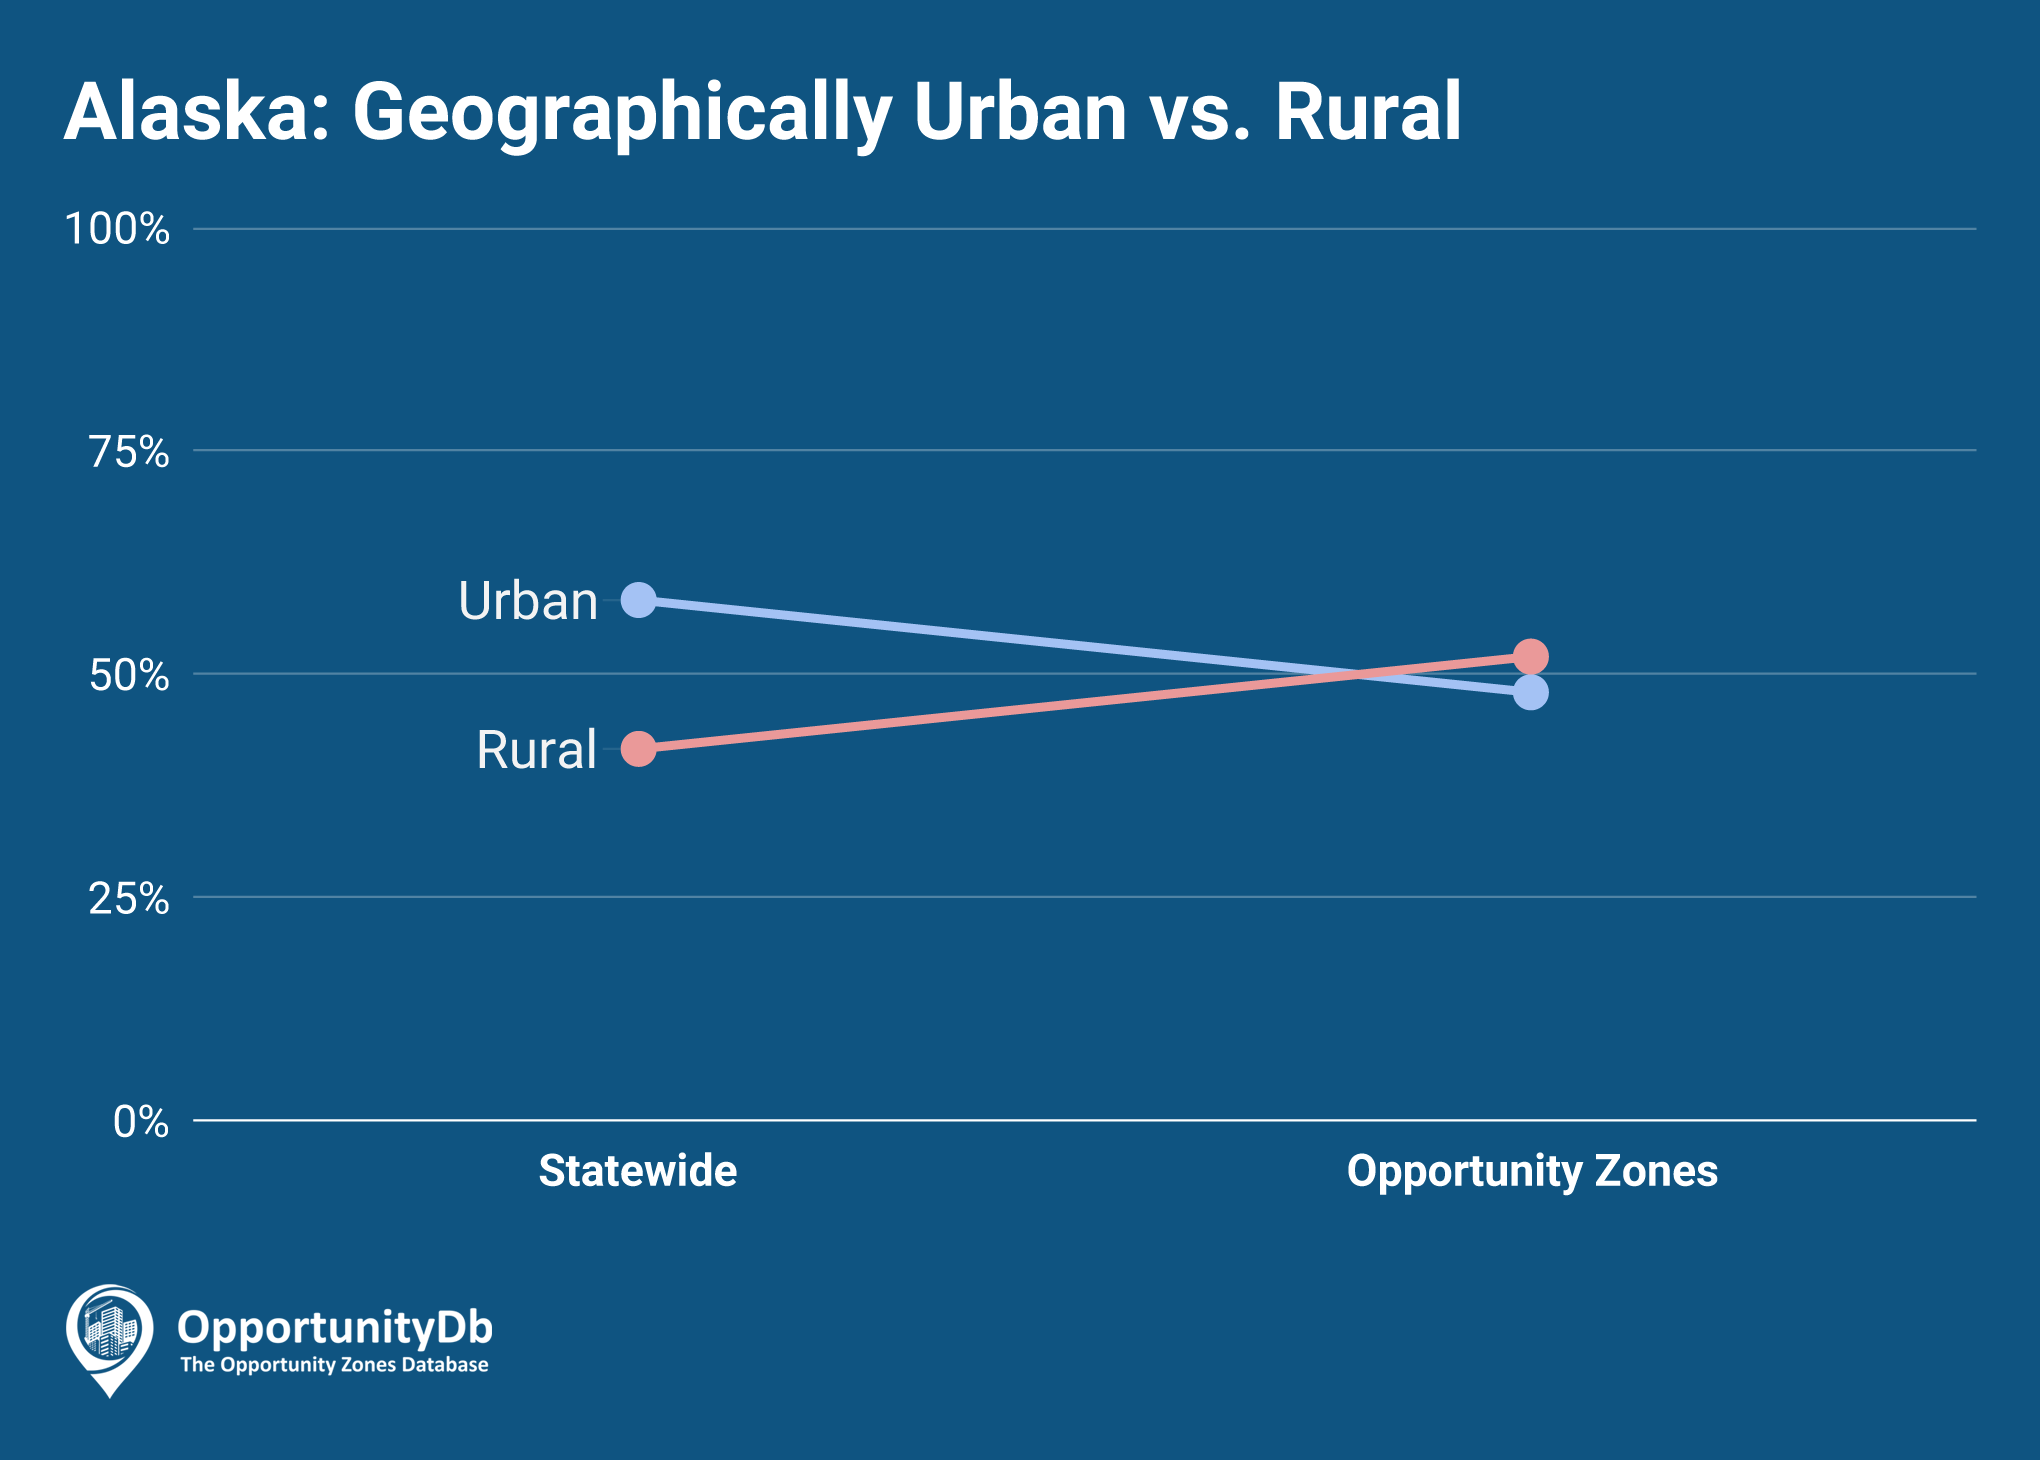 Urban vs. Rural in Alaska Opportunity Zones